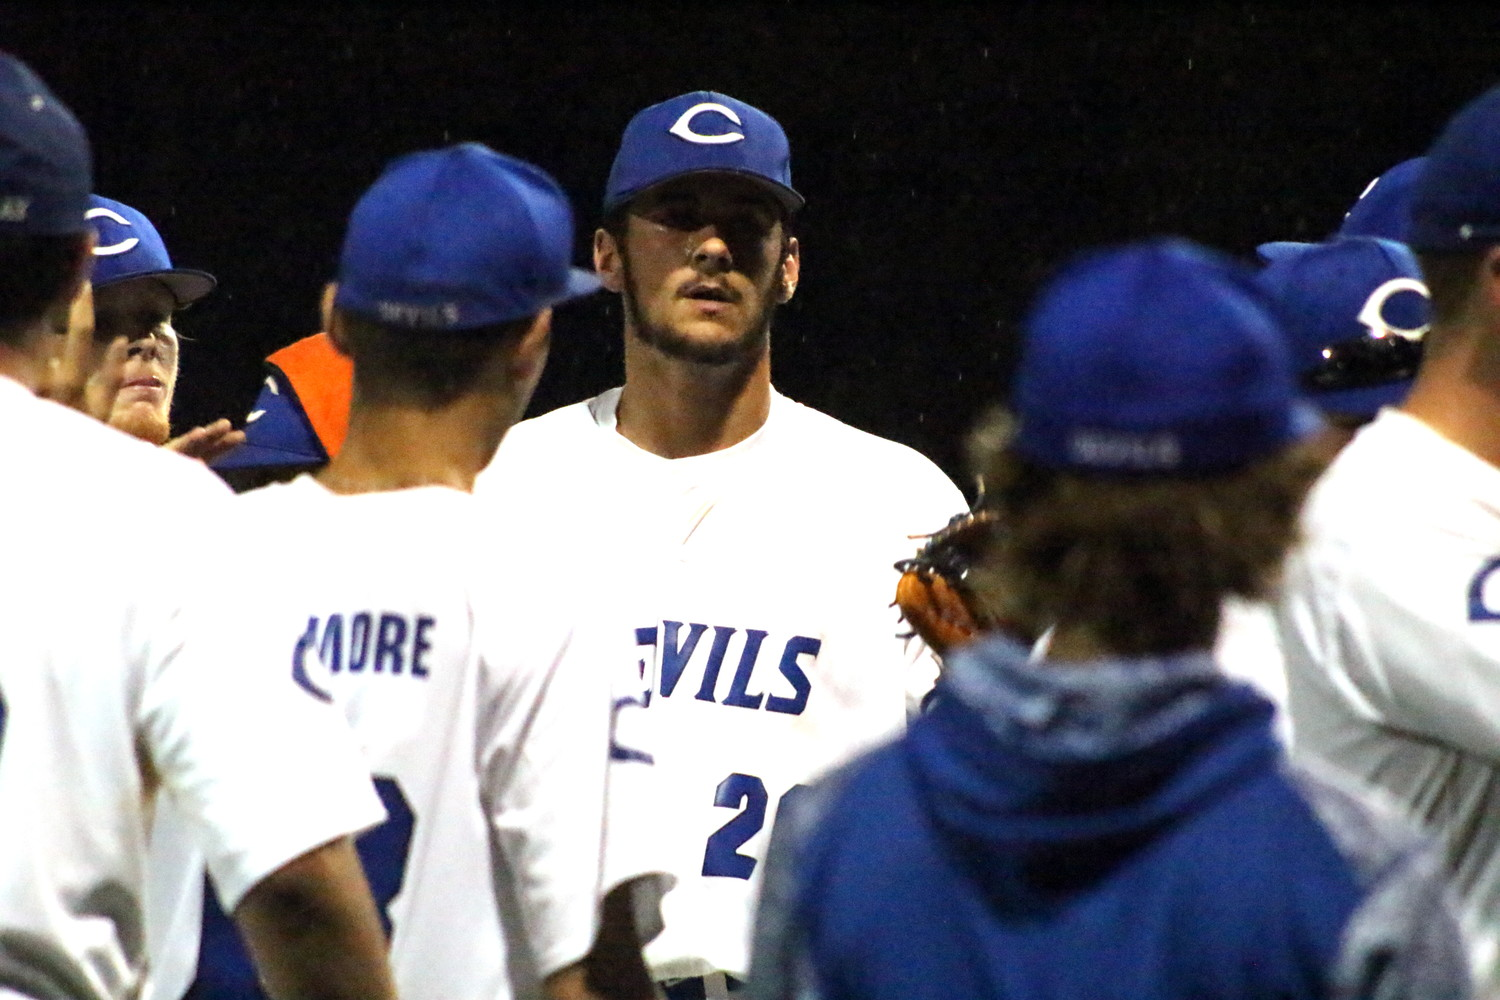 Clay High senior pitcher Connor Solomon has had two huge games with wins over Ponte Vedra and Mosley as the Blue Devils head to a Wednesday Class 6A semifinal against Tampa Jefferson.